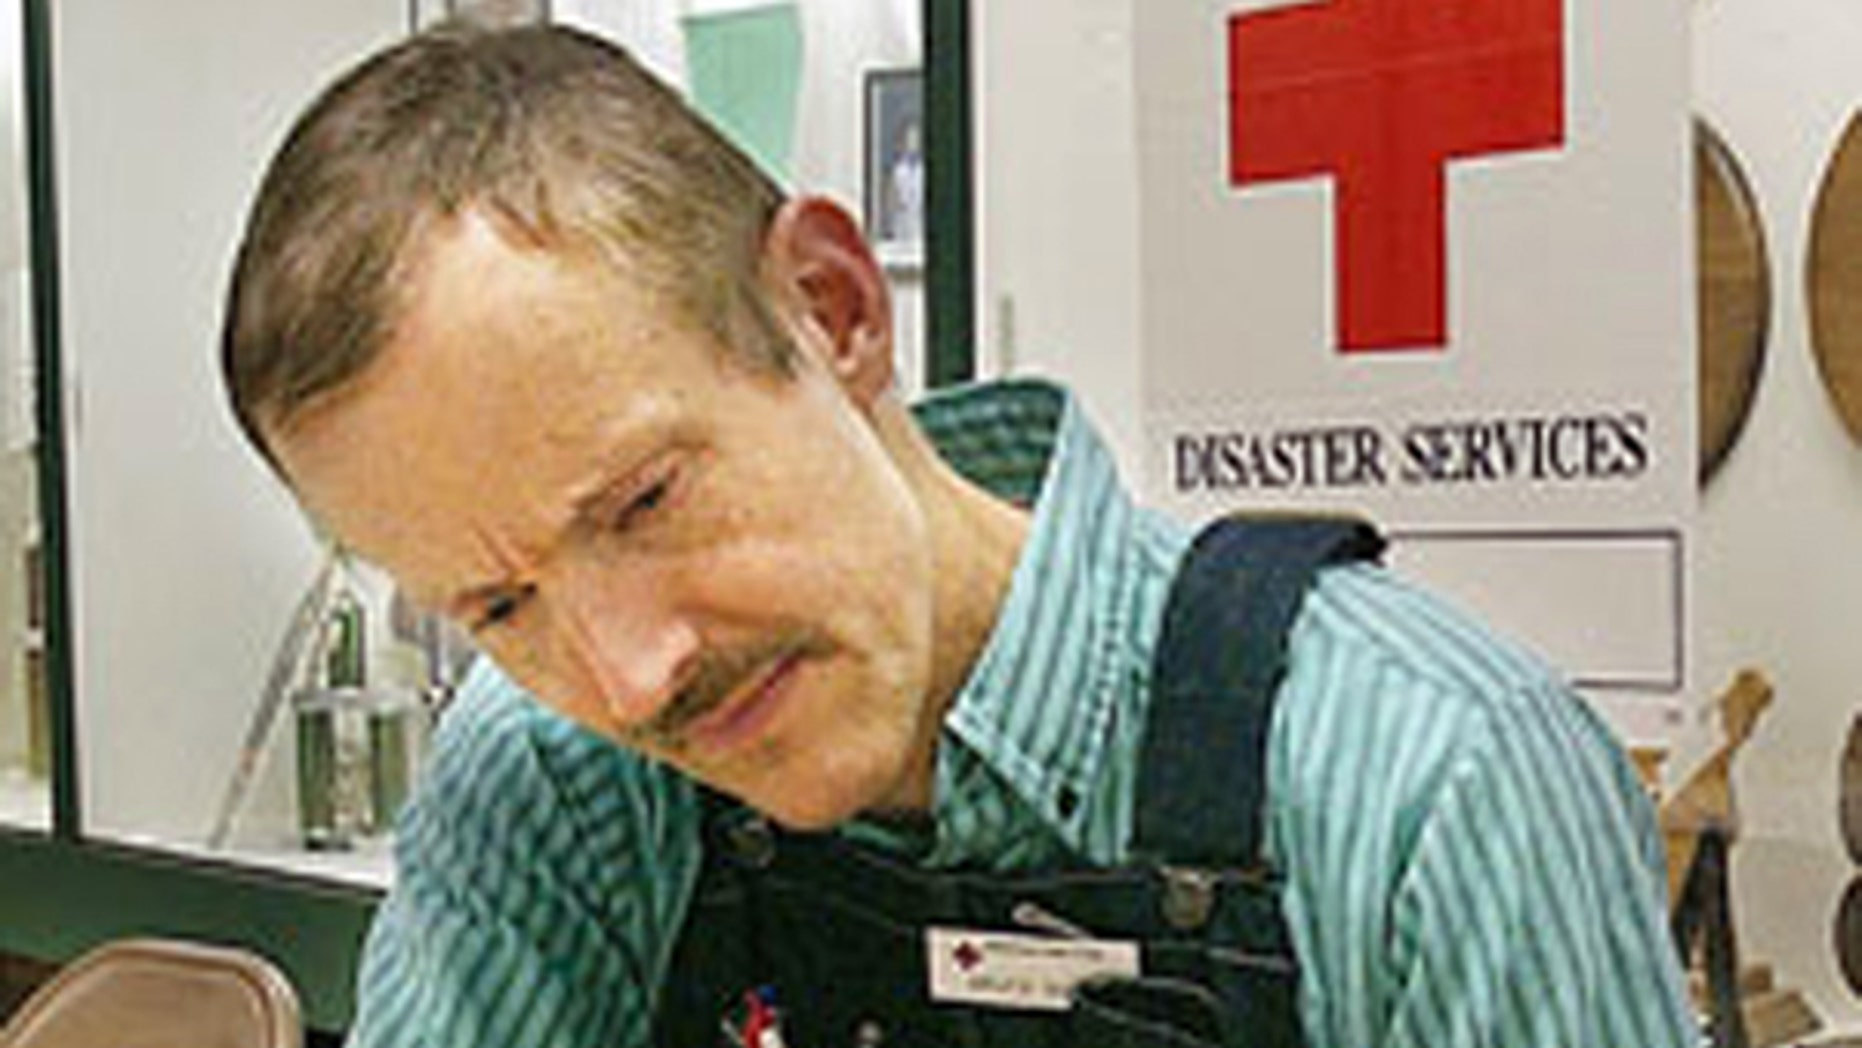 The FBI closed the 2001 anthrax letters case in February 2010, concluding that late scientist Bruce Ivins, shown here, acted alone.